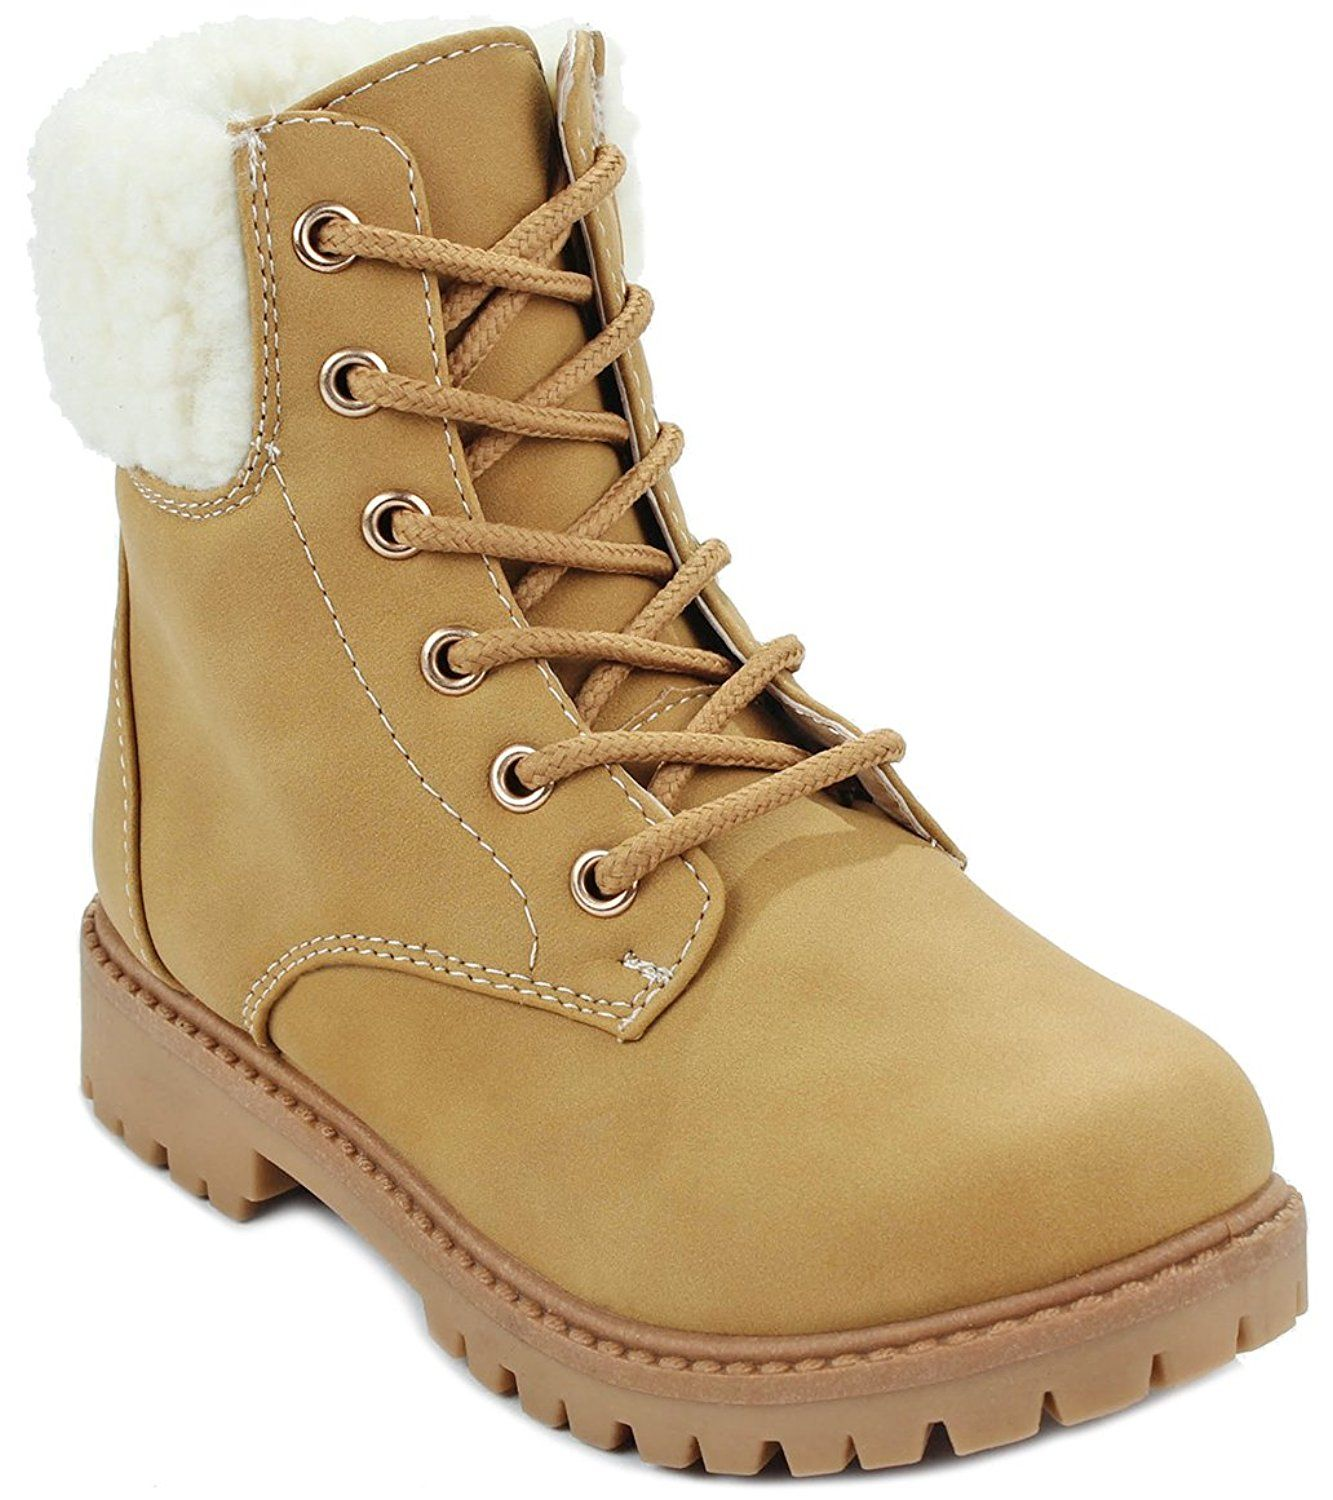 d5f0b016092 Kids Girls Faux Wool Fur Cuff Lace Up Nubuck Combat High Top Ankle ...